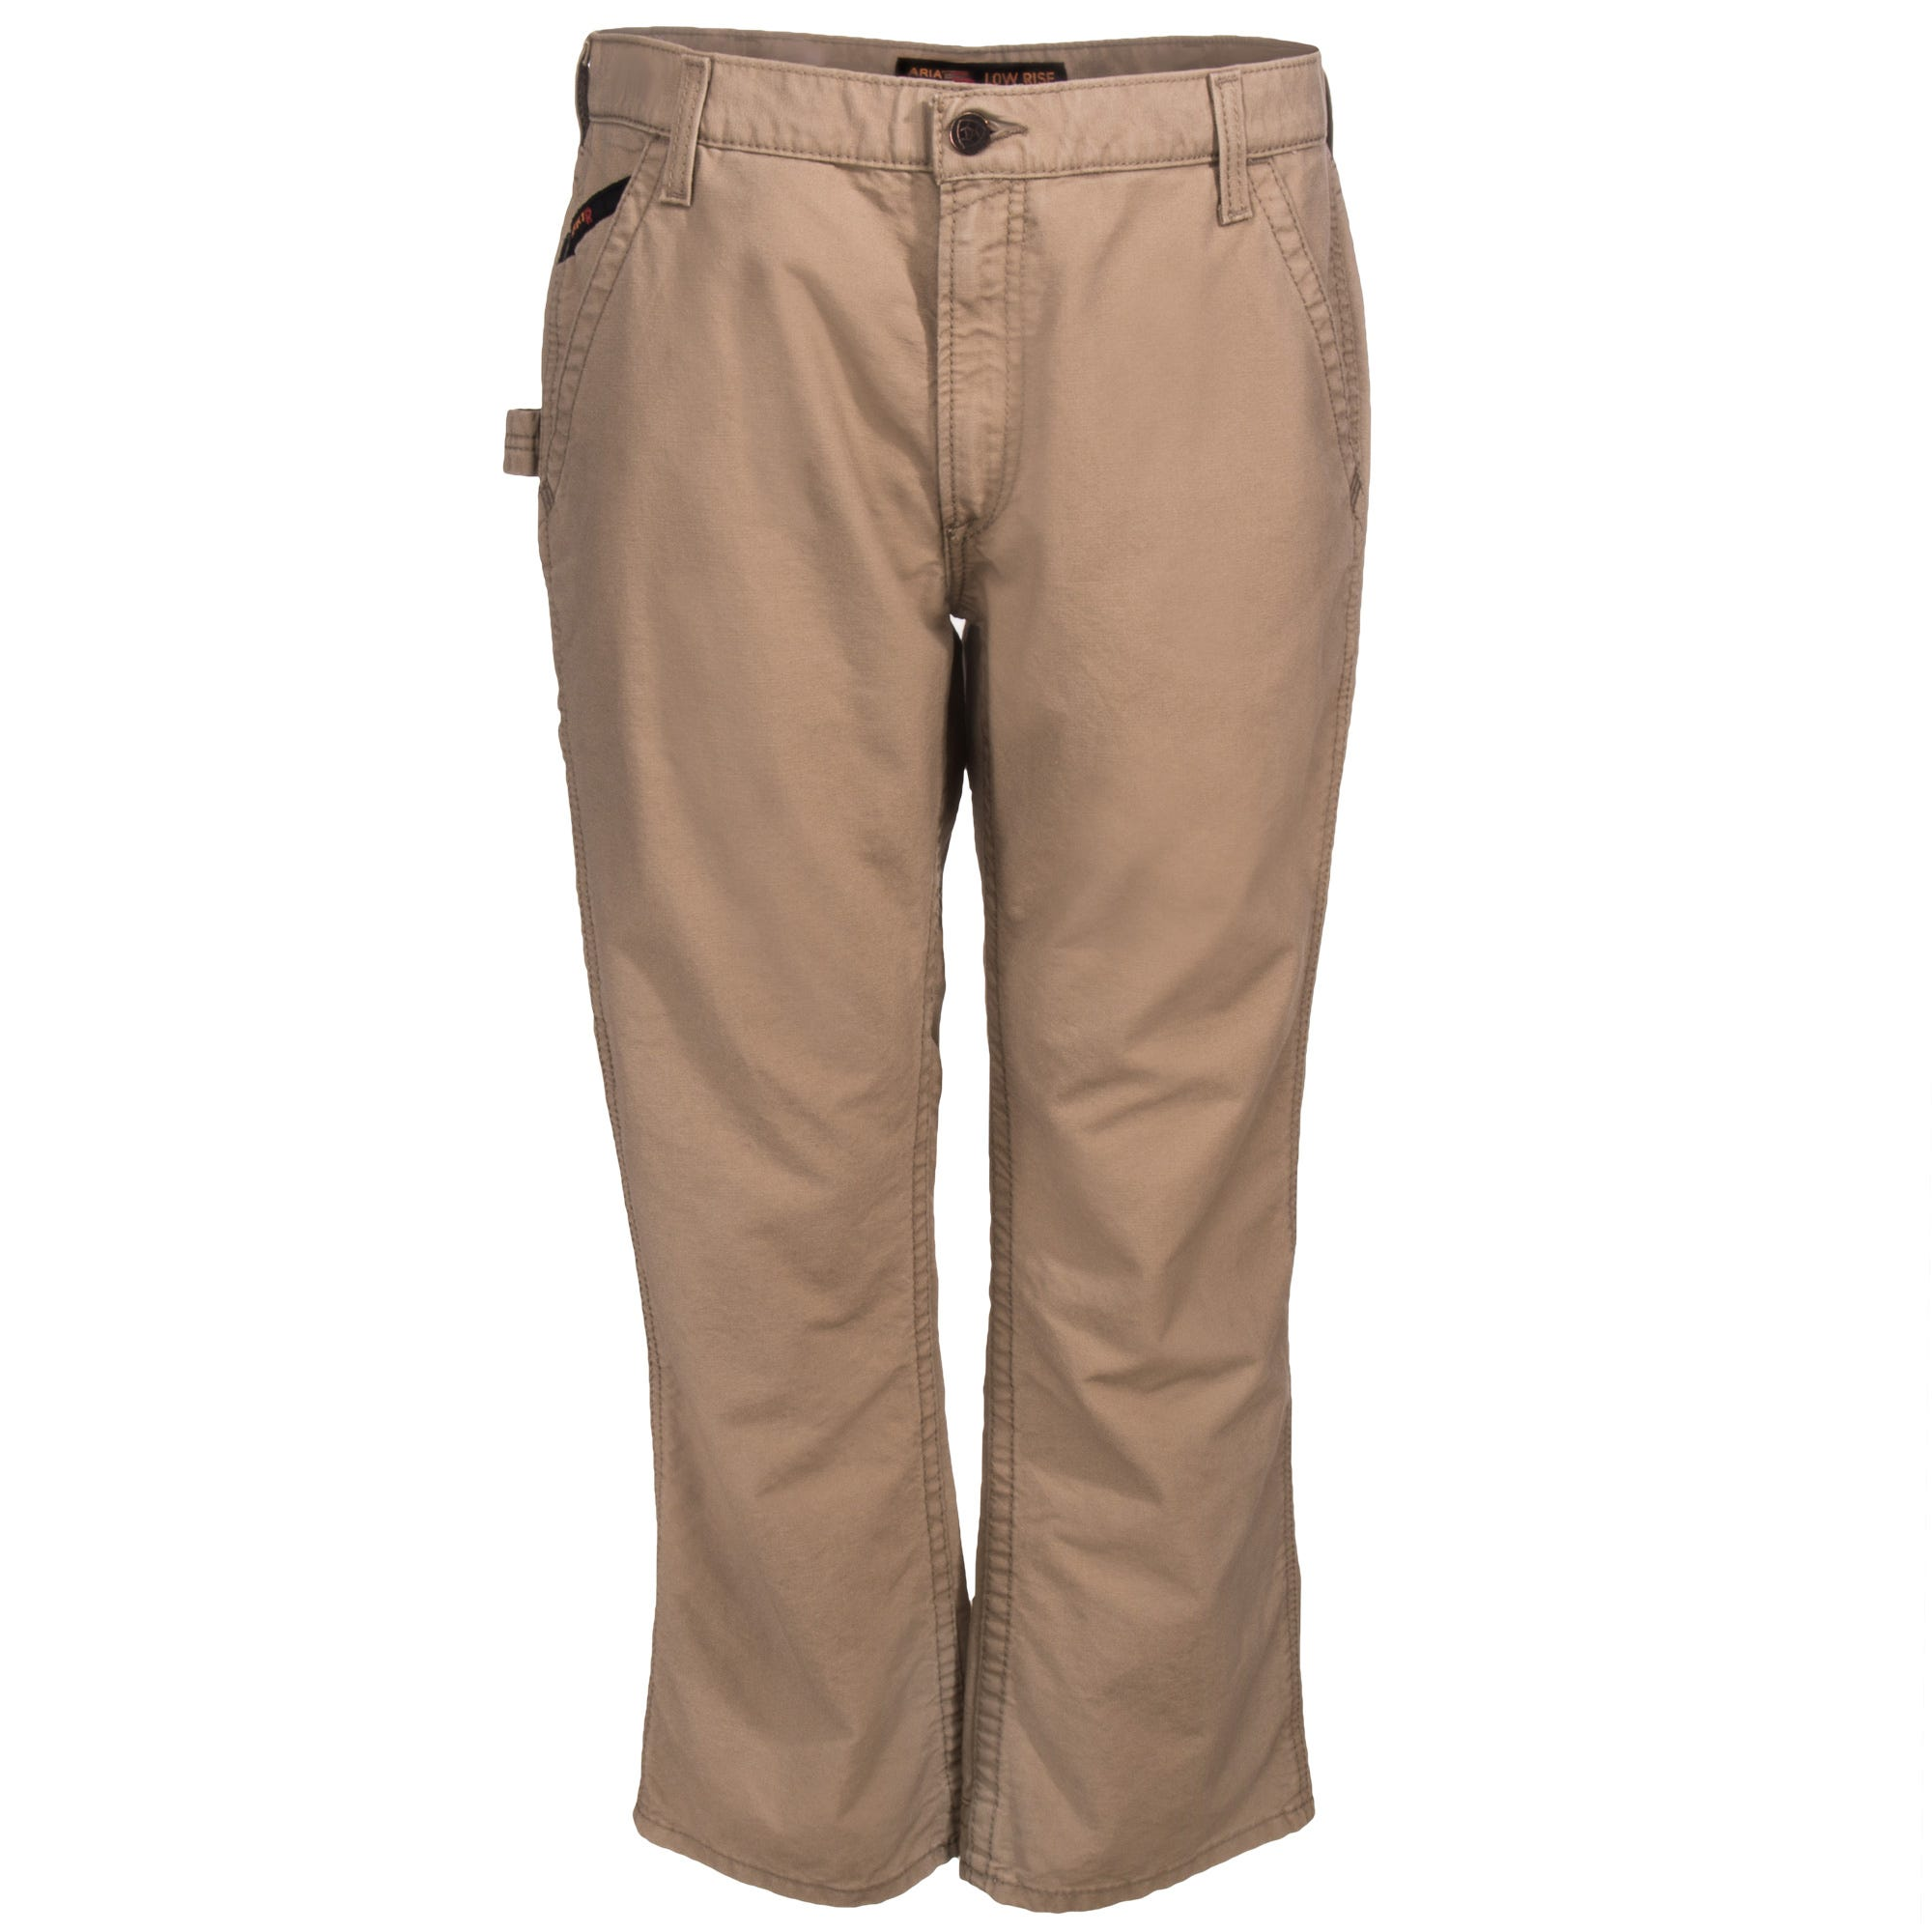 e6db783746e Ariat Work FR M4 Workhorse FR 10017227 Khaki Boot Cut Lowrise Pants